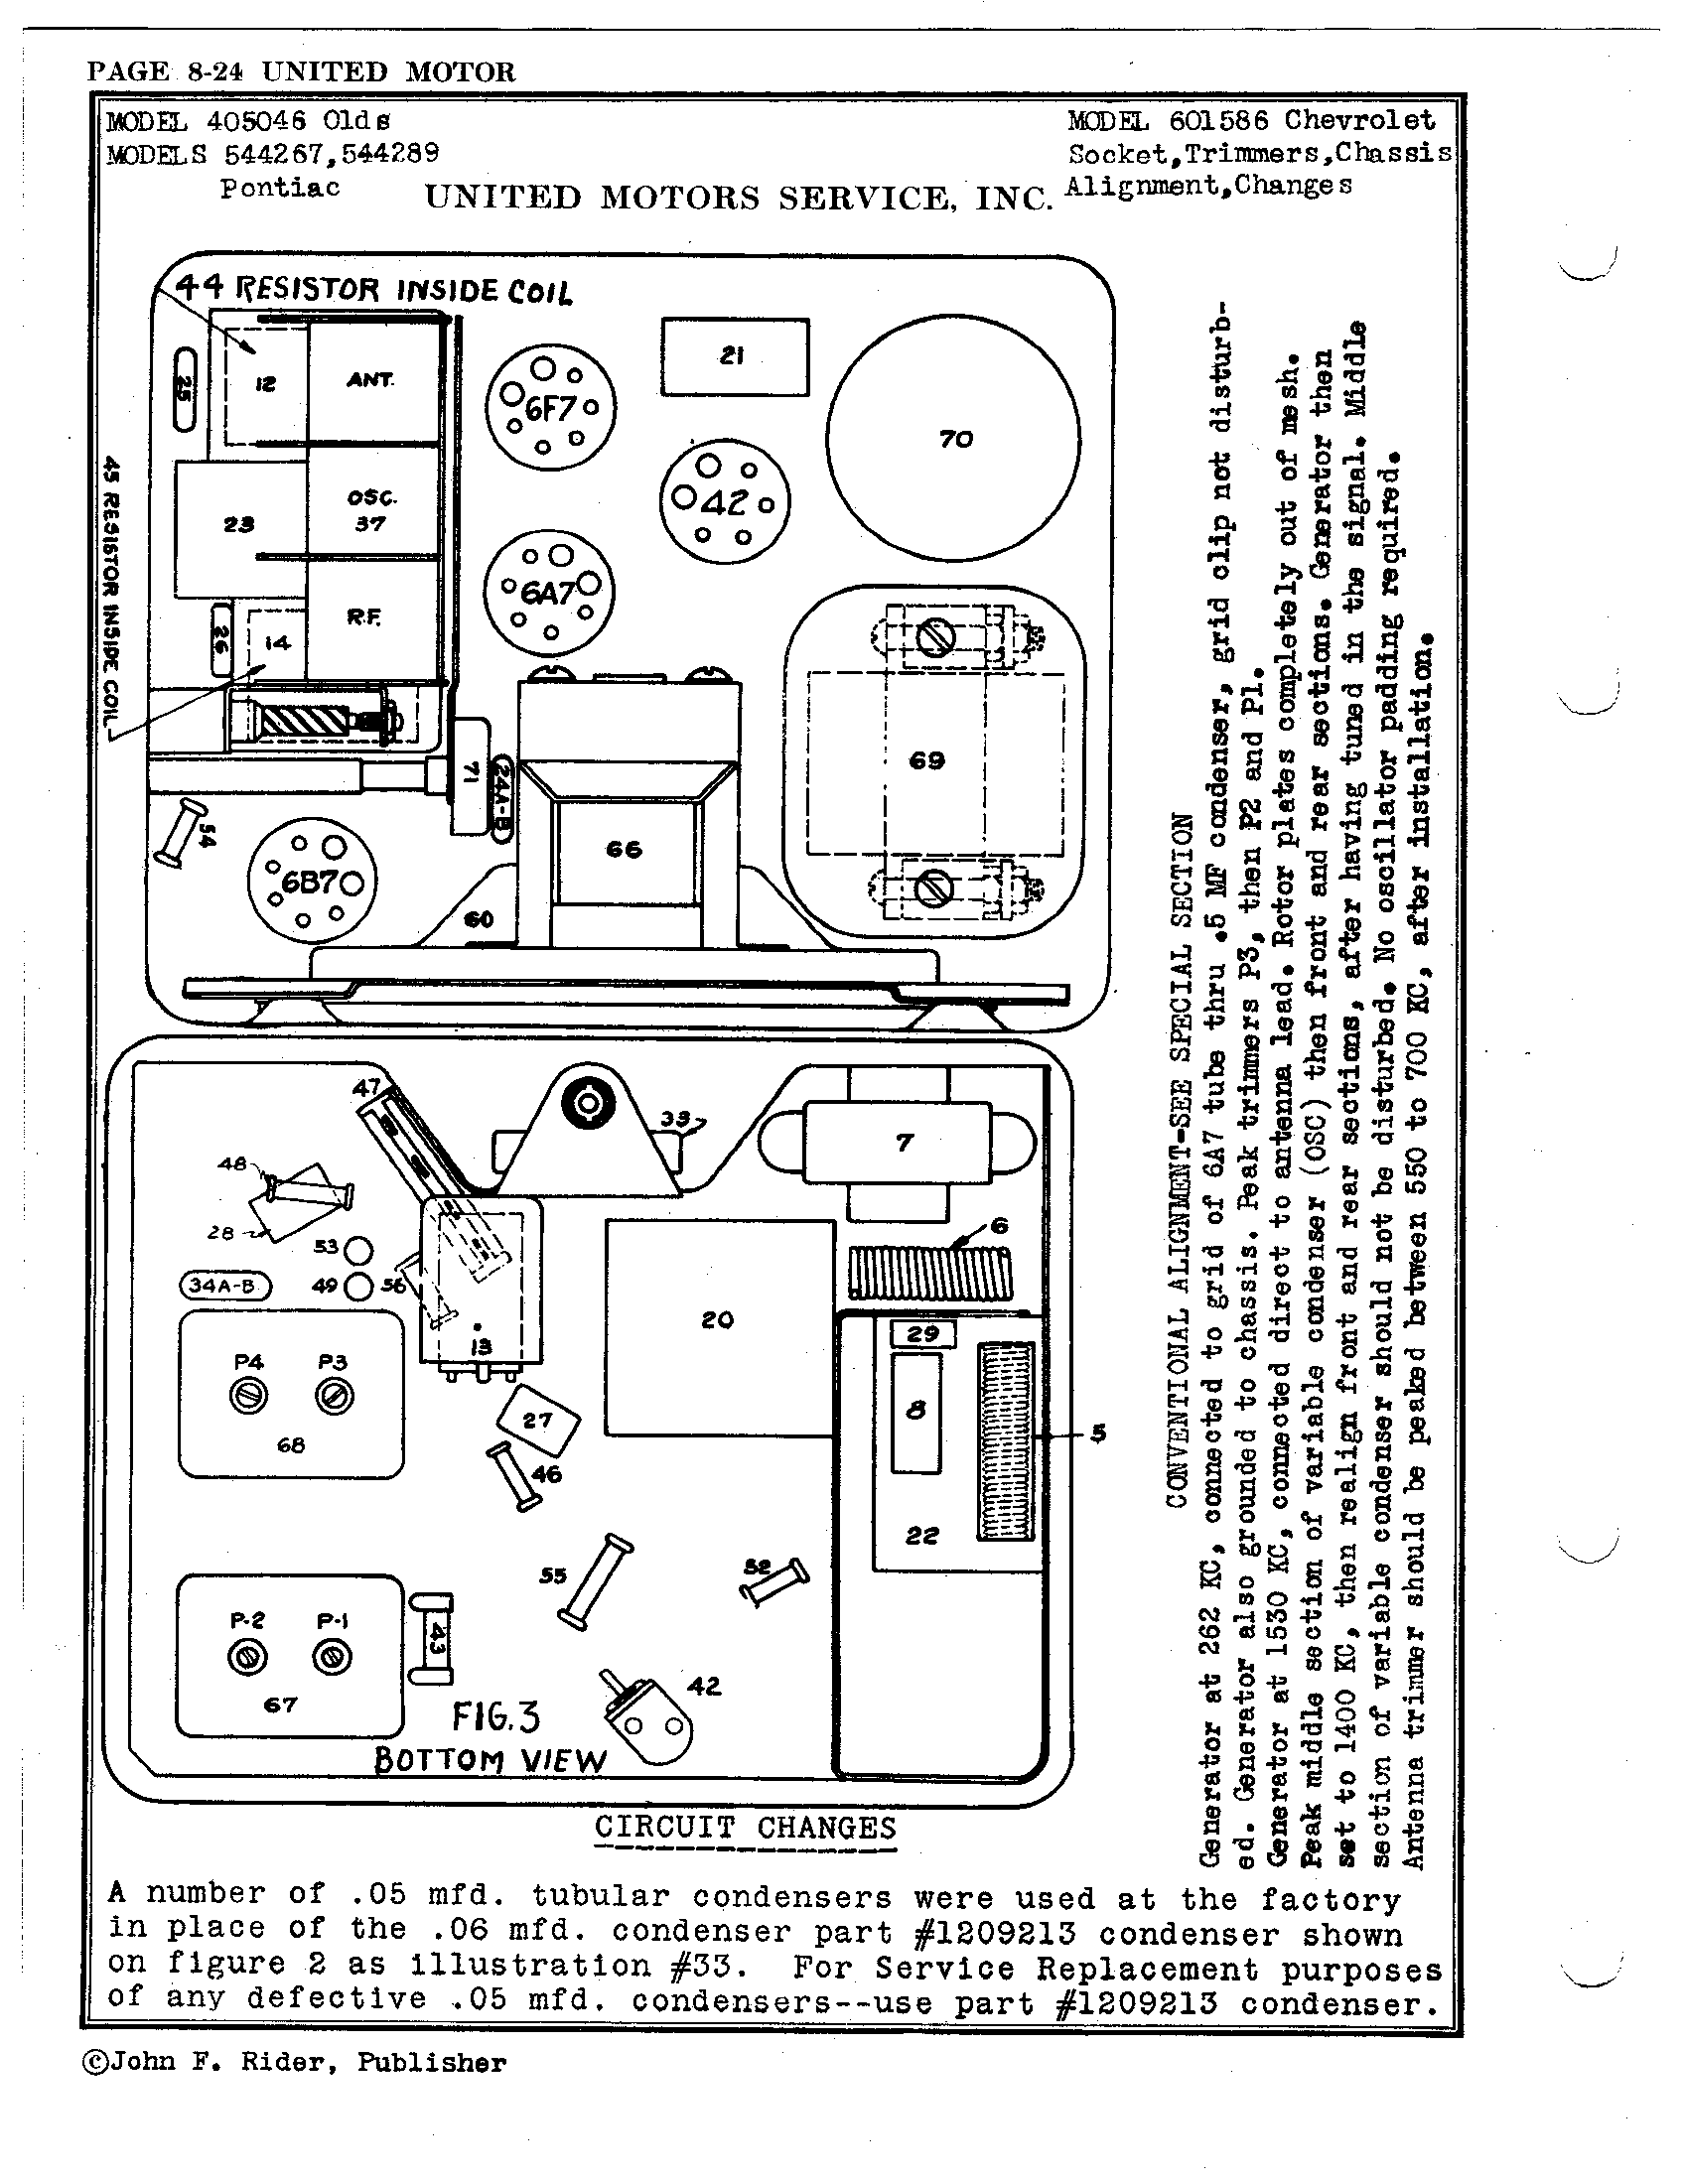 pontiac 2 2 engine diagram schematics united motors service delco 544289 pontiac antique electronic  delco 544289 pontiac